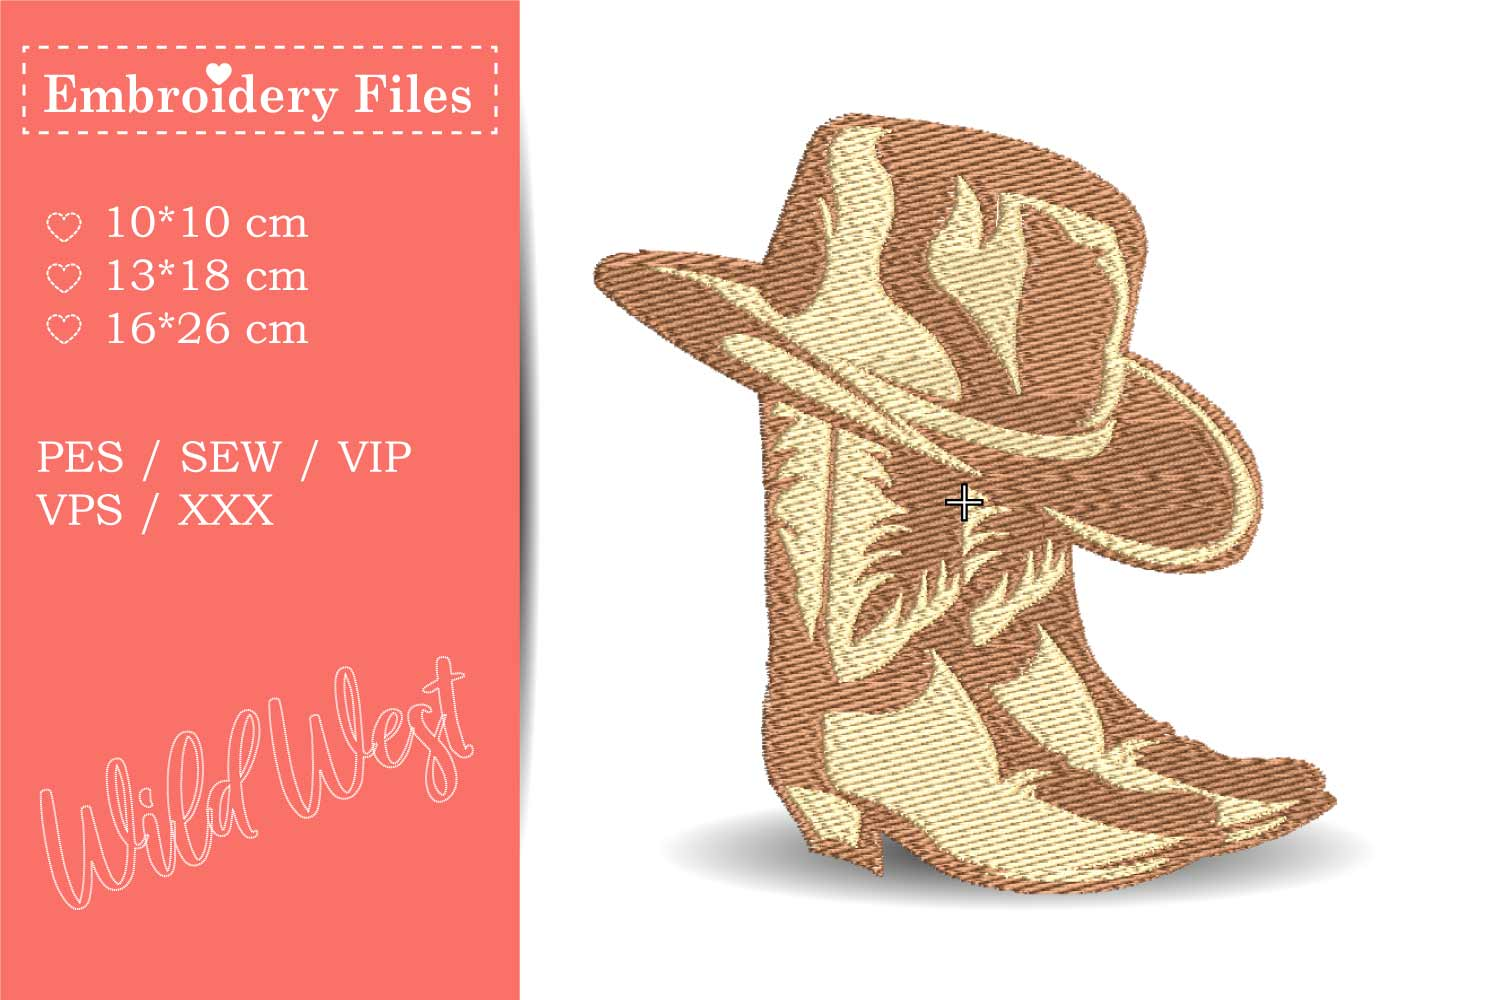 Cowboy Boots and Hat - Embroidery File for Beginners example image 2